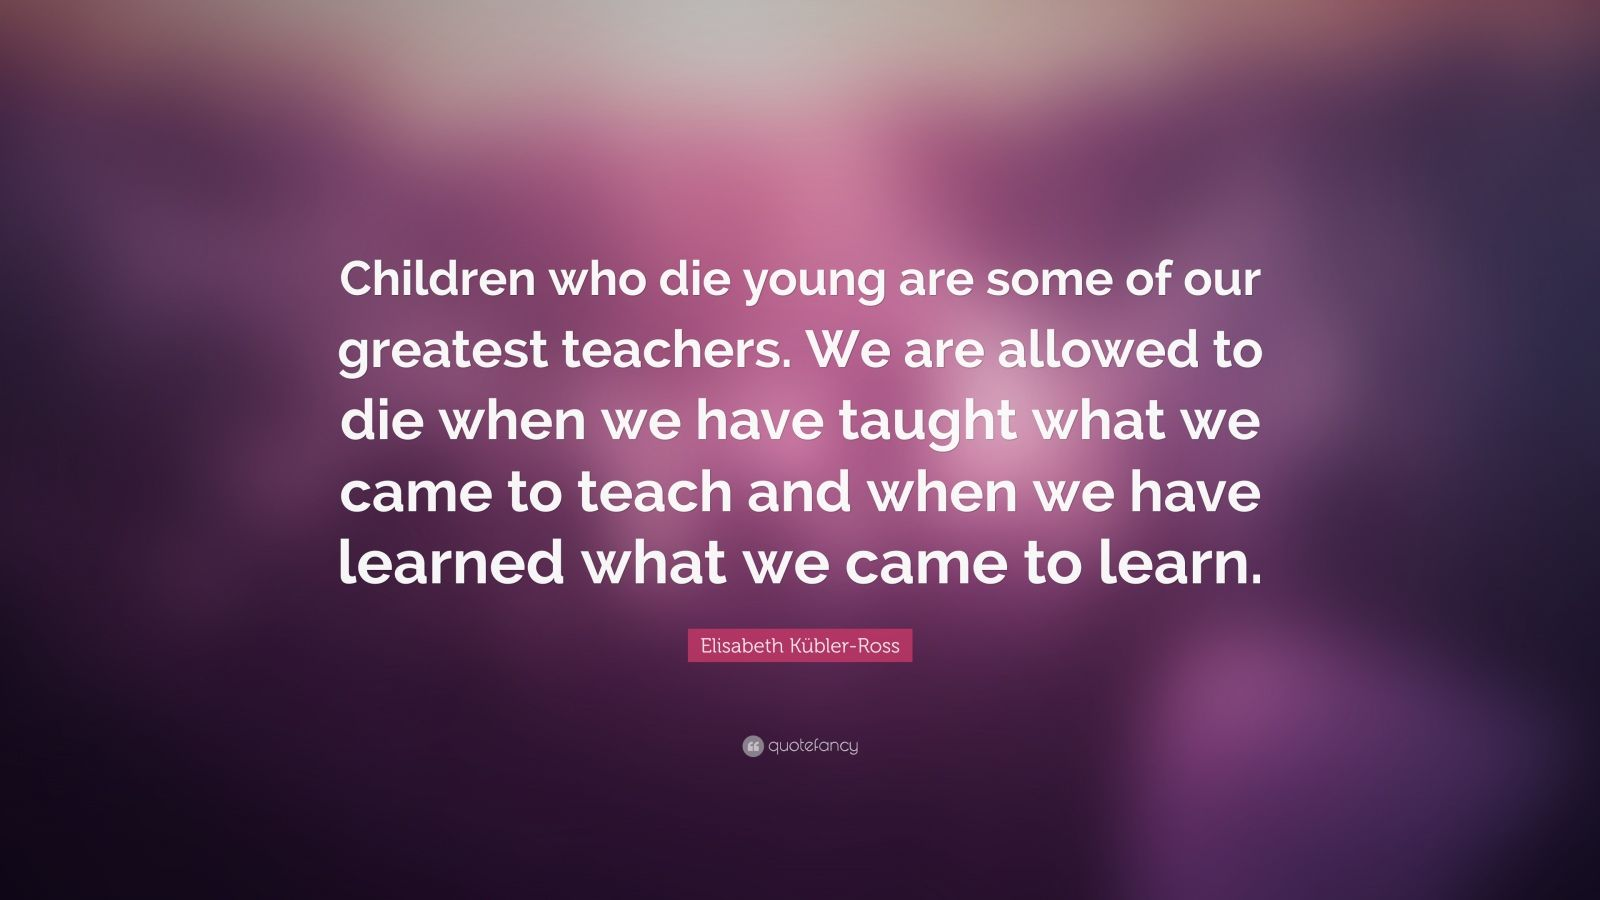 "Elisabeth Kübler-Ross Quote: ""Children who die young are some of our greatest teachers. We are allowed to die when we have taught what we came to teach and when we have learned what we came to learn."""